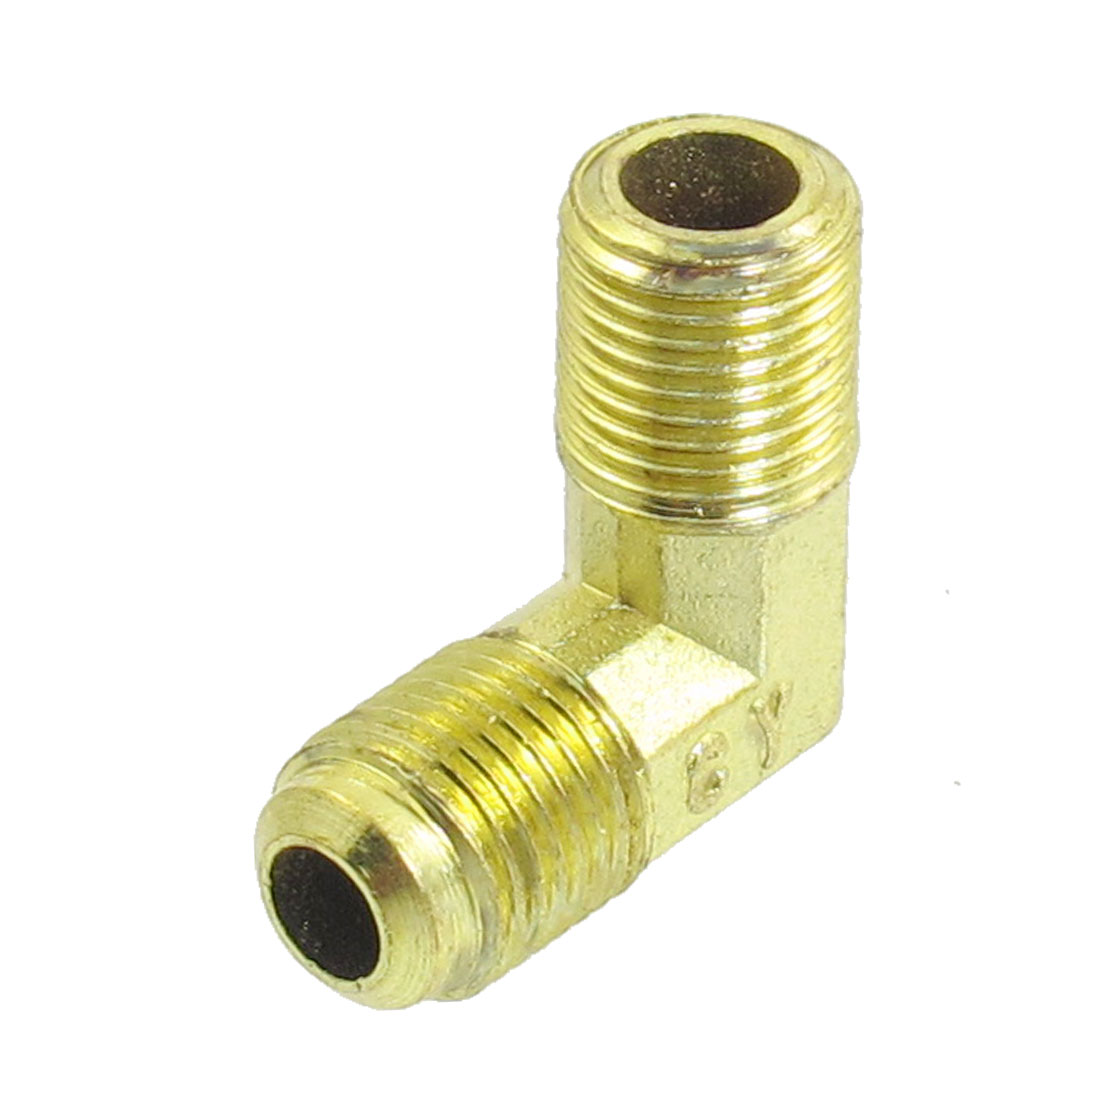 10mm to 10mm M/M Brass 90 Degree Equal Male Elbow Pipe Connector Adapter